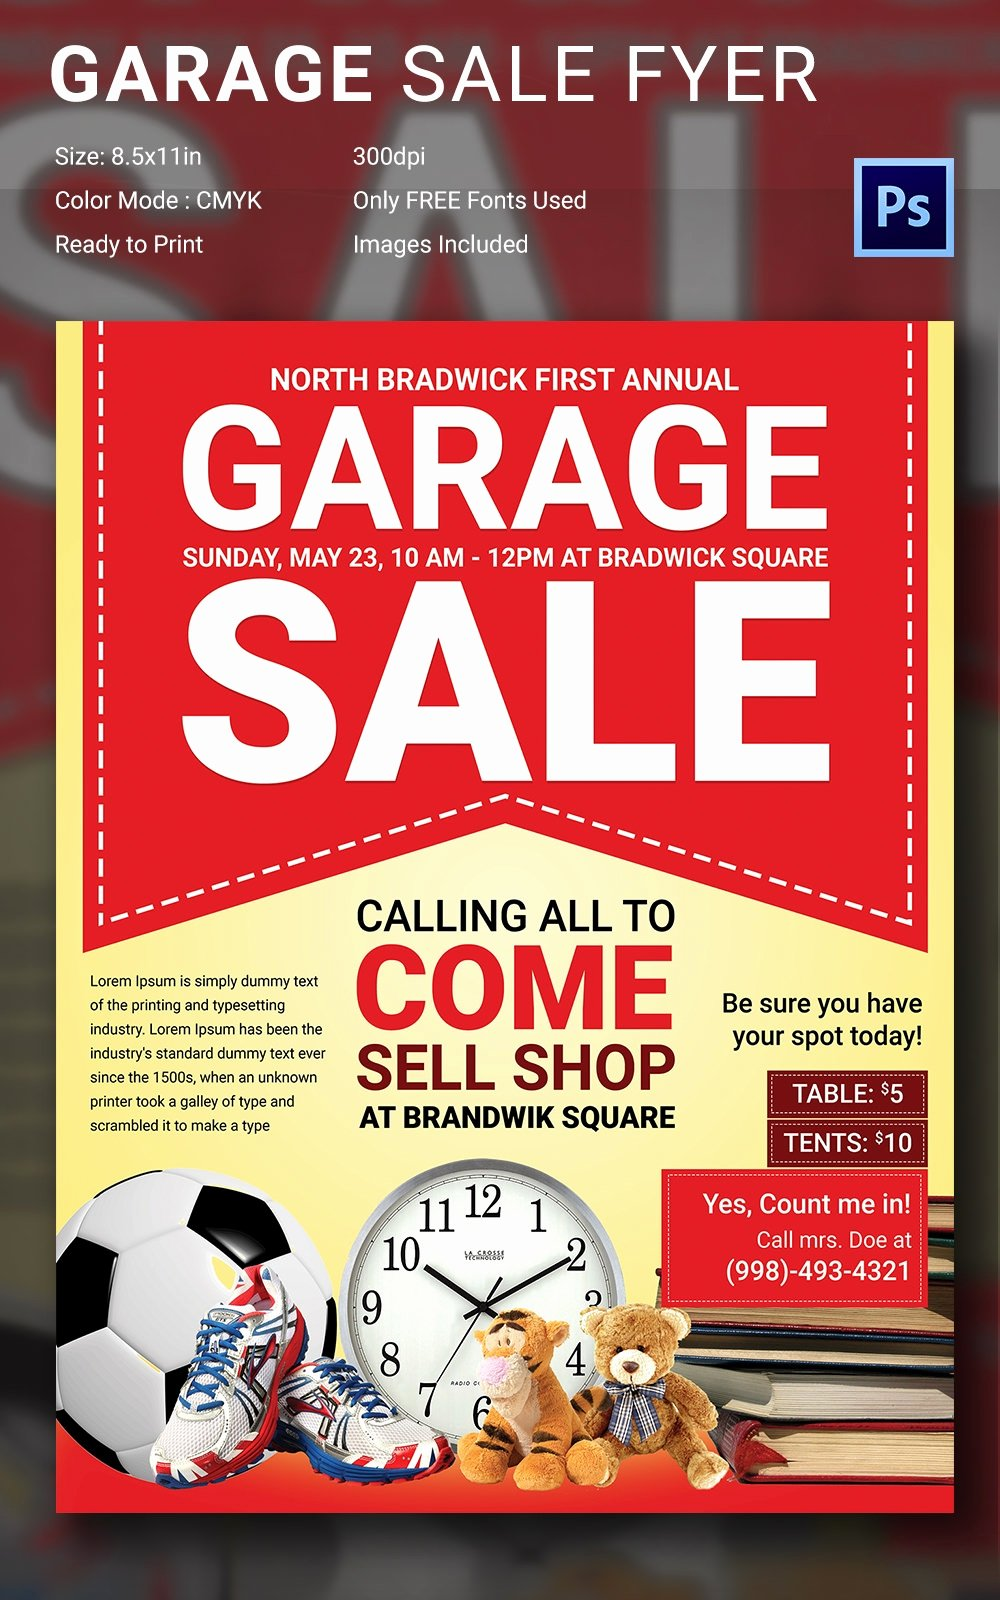 Yard Sale Flyer Template Unique 14 Best Yard Sale Flyer Templates & Psd Designs